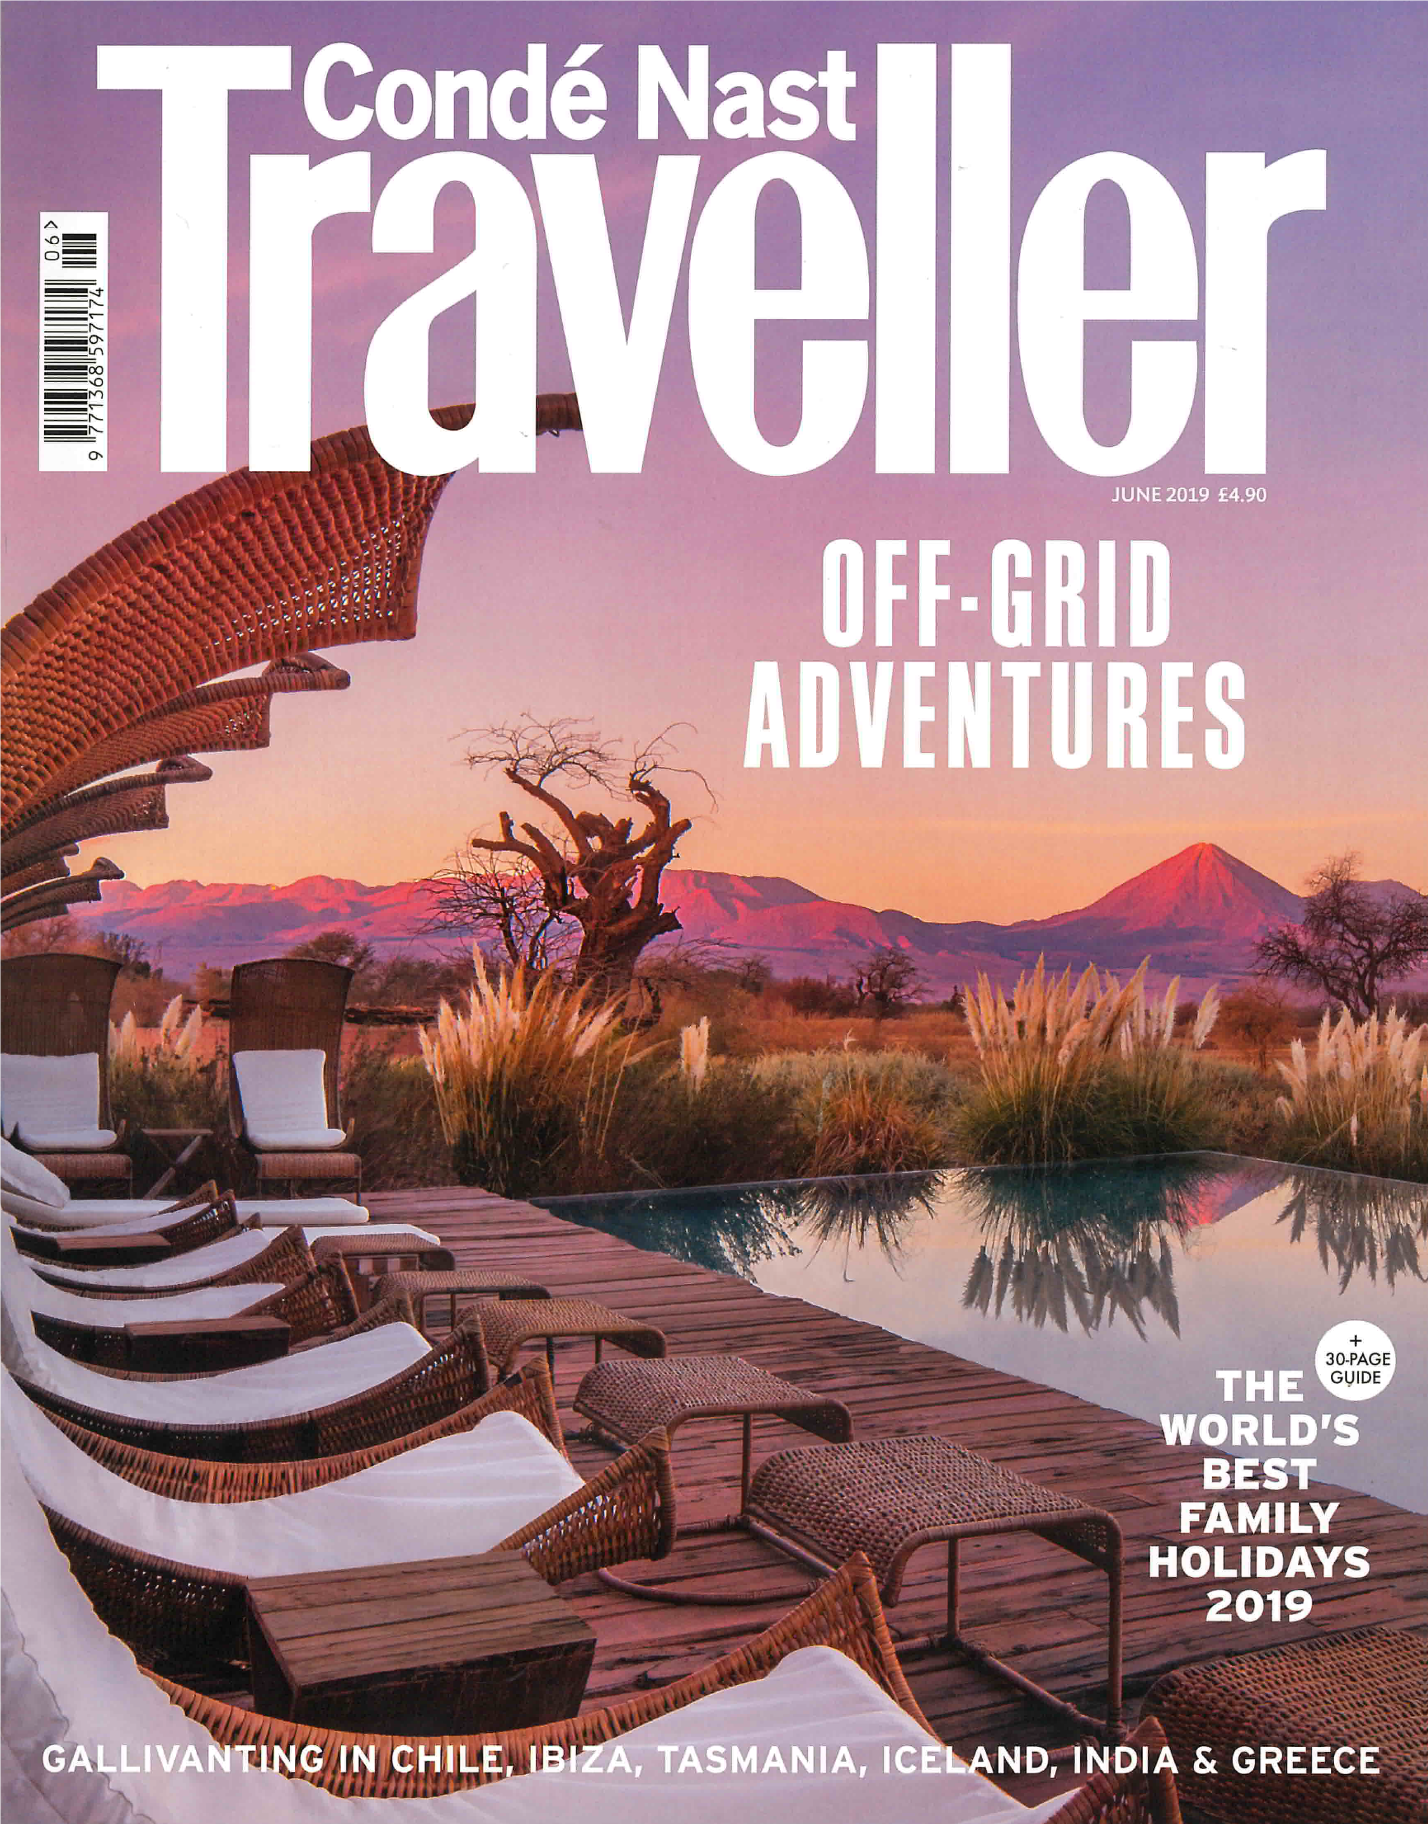 CONDE NAST TRAVELLER JUNE 2019 ISSUE